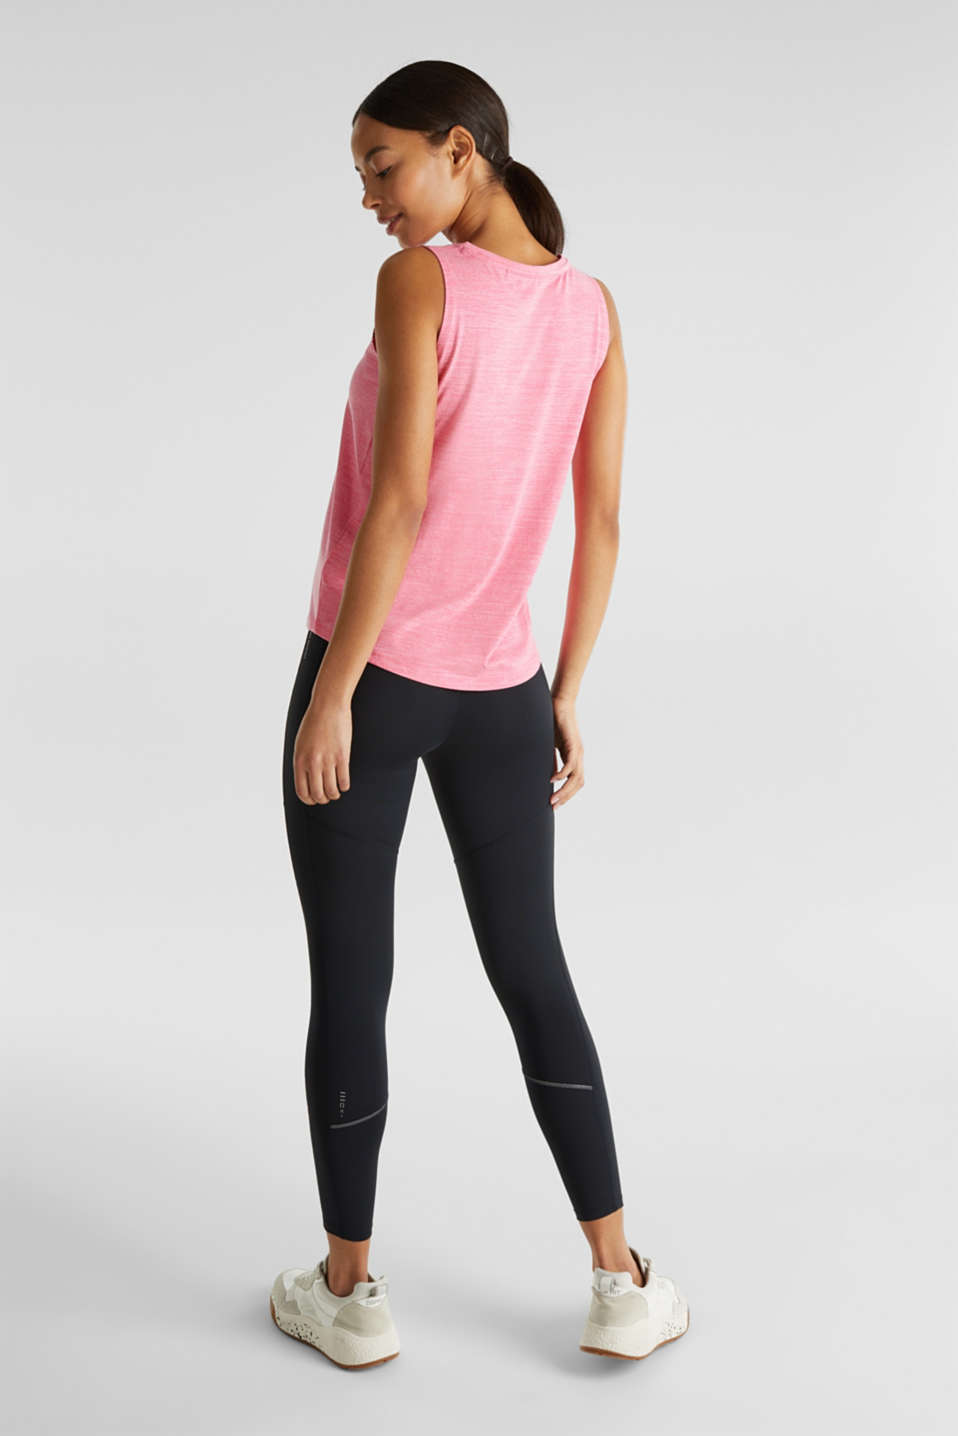 NEON melange active print top, E-DRY, CORAL 2, detail image number 3